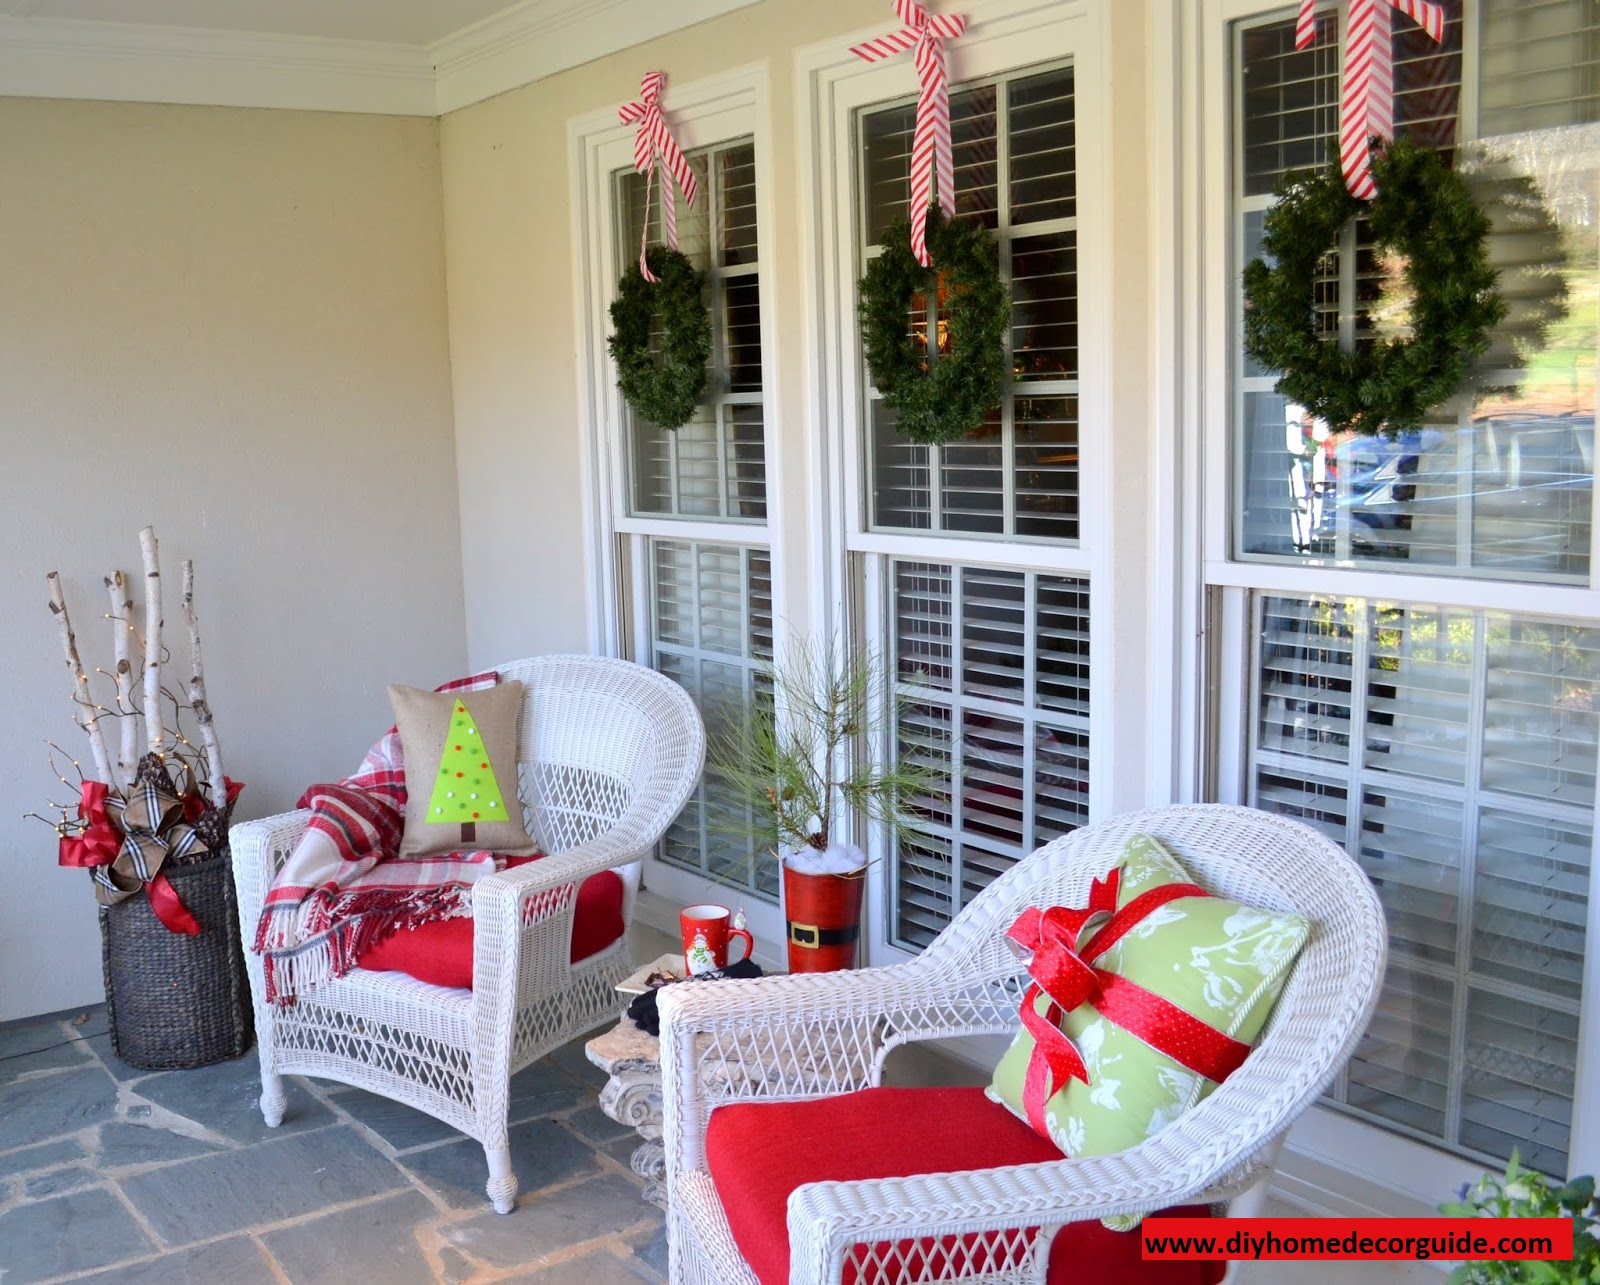 20 diy outdoor christmas decorations ideas 2014 - Outdoor dekoration ...